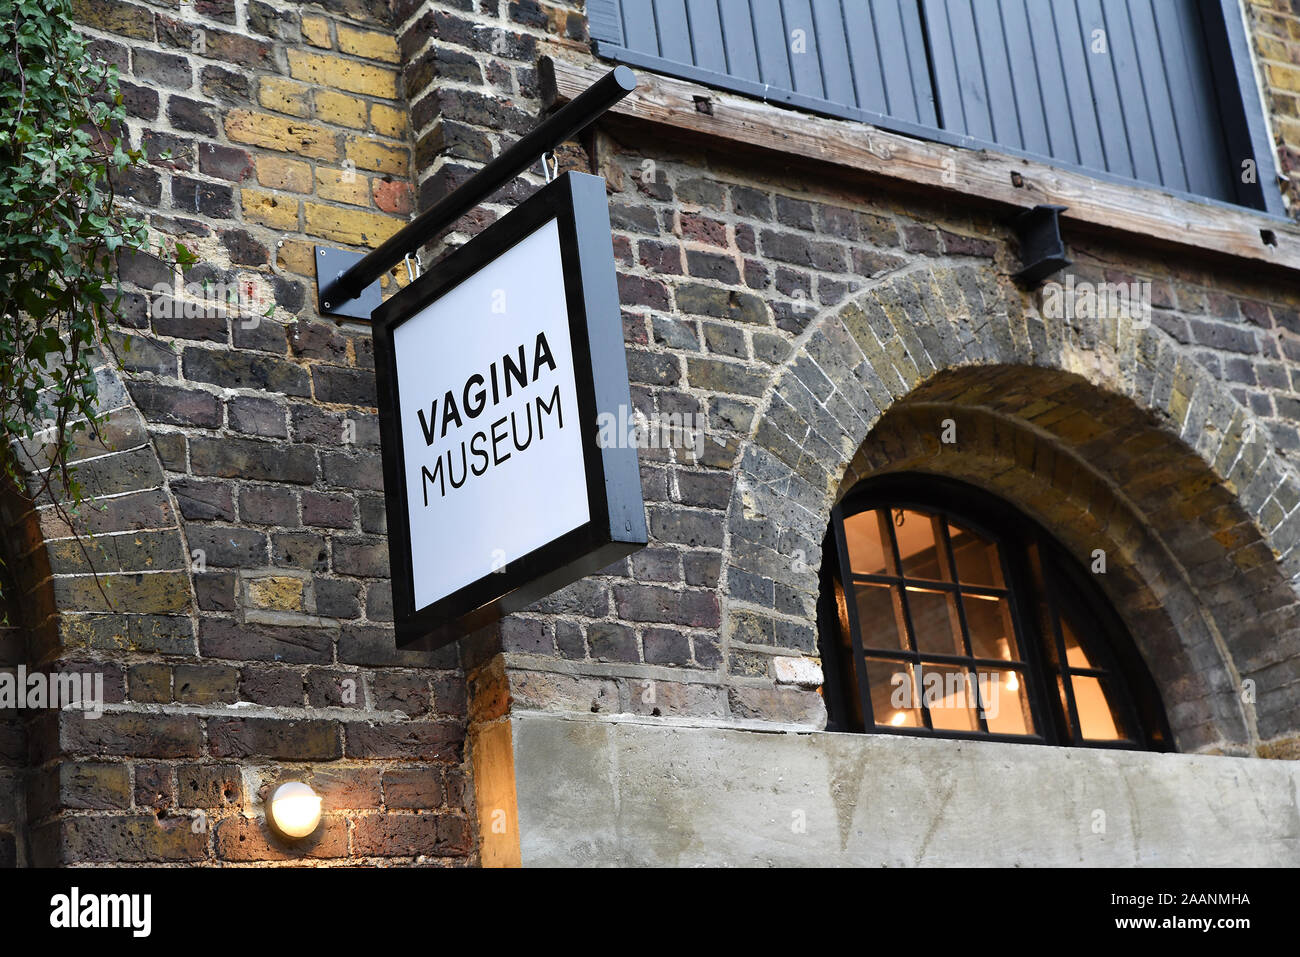 london-uk-16th-november-2019-opening-day-at-camden-markets-vagina-museum-located-in-stables-market-camden-with-the-intention-to-open-permanent-premises-in-the-future-claimed-to-be-the-worlds-first-bricks-and-mortar-museum-dedicated-to-the-vagina-vulva-and-gynaecological-anatomy-on-its-opening-day-the-museum-was-crowded-mainly-with-women-from-all-ages-the-museum-a-registered-charity-was-created-by-florence-schechter-pictured-vagina-museum-signage-outside-the-museum-credit-stephen-bellalamy-2AANMHA.jpg